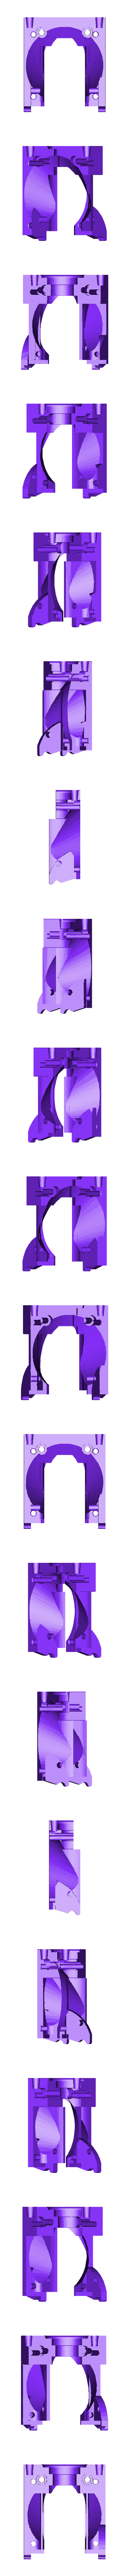 The_Hive_-_Fan_Mount.stl Download free STL file The Hive - Hurricane Duct for V6 Hotend Remix • Design to 3D print, FedorSosnin